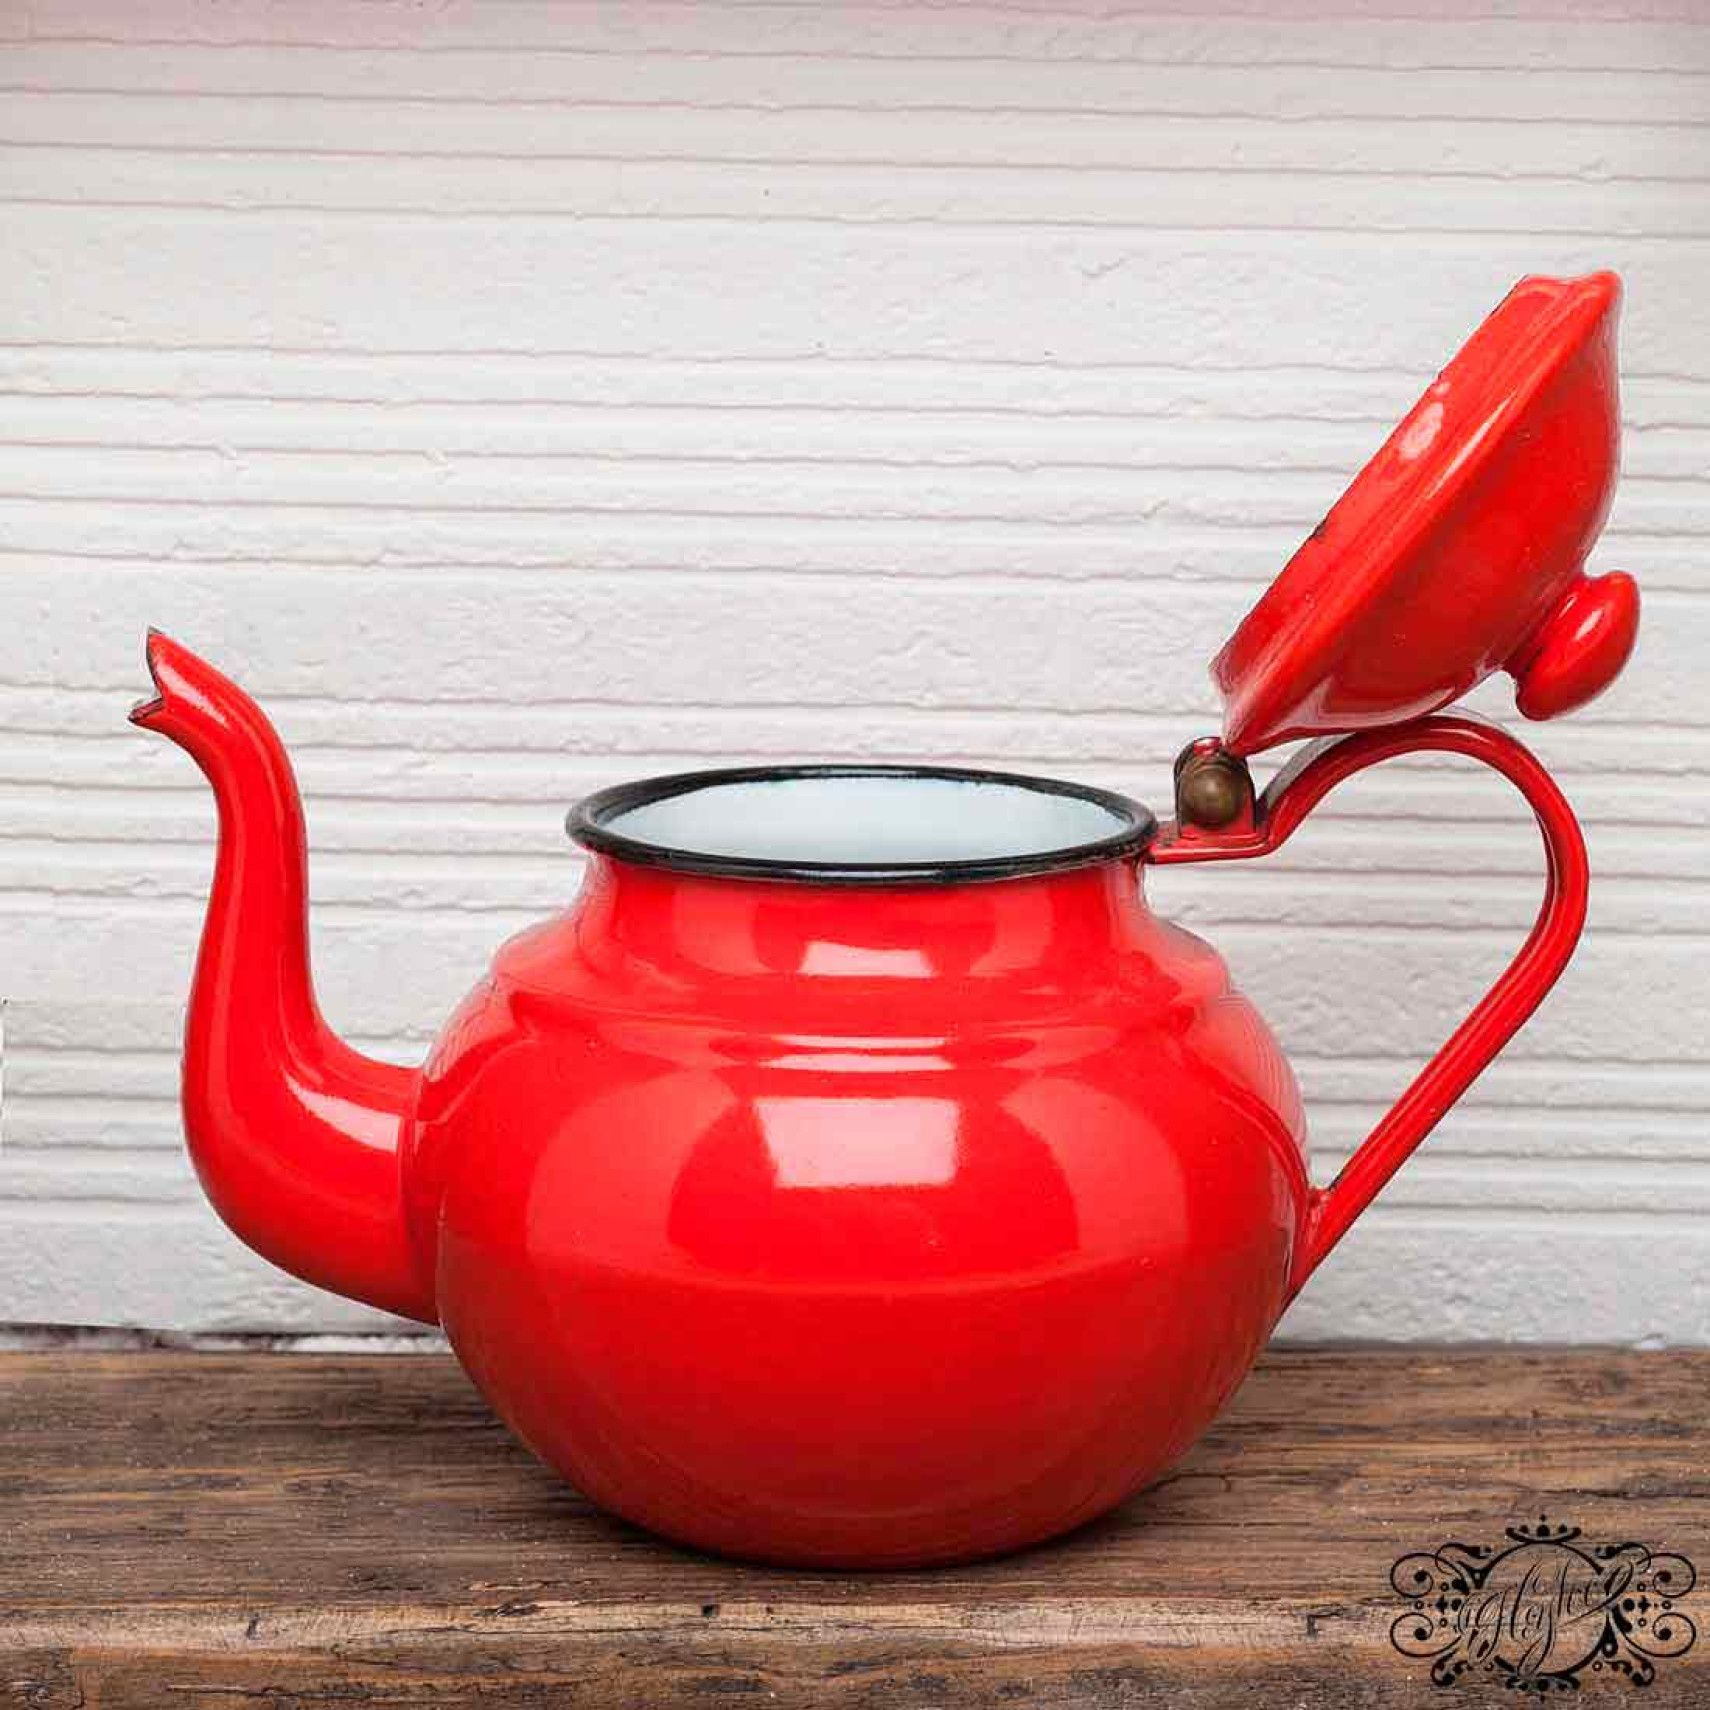 vintage red teapot opened scarlet red pinterest red teapot